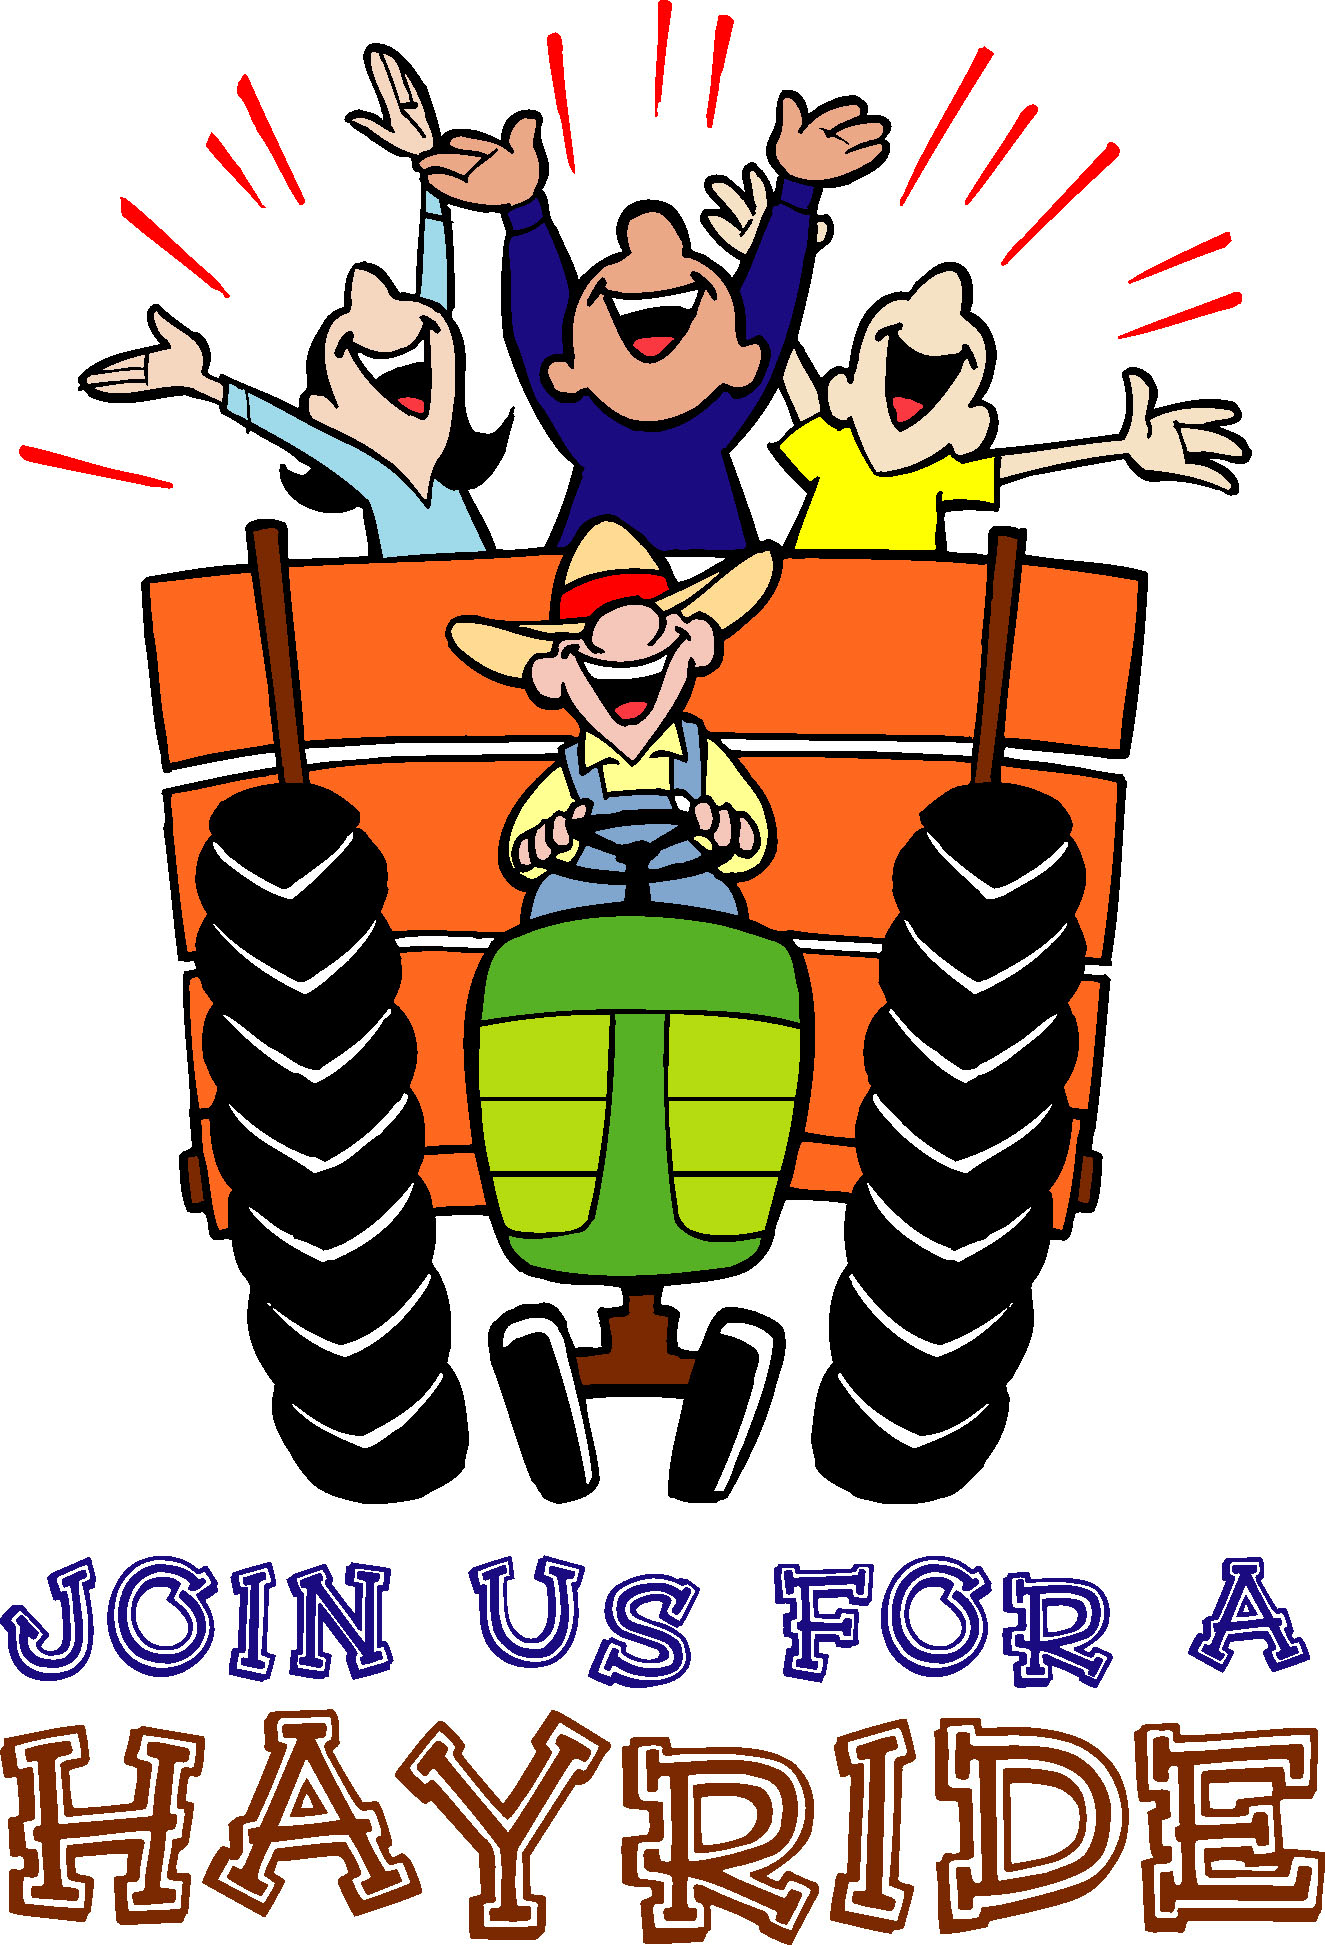 Tractor Pulling Hay Wagons Stock Illustration - Download ... |Hayride Wagon Clipart